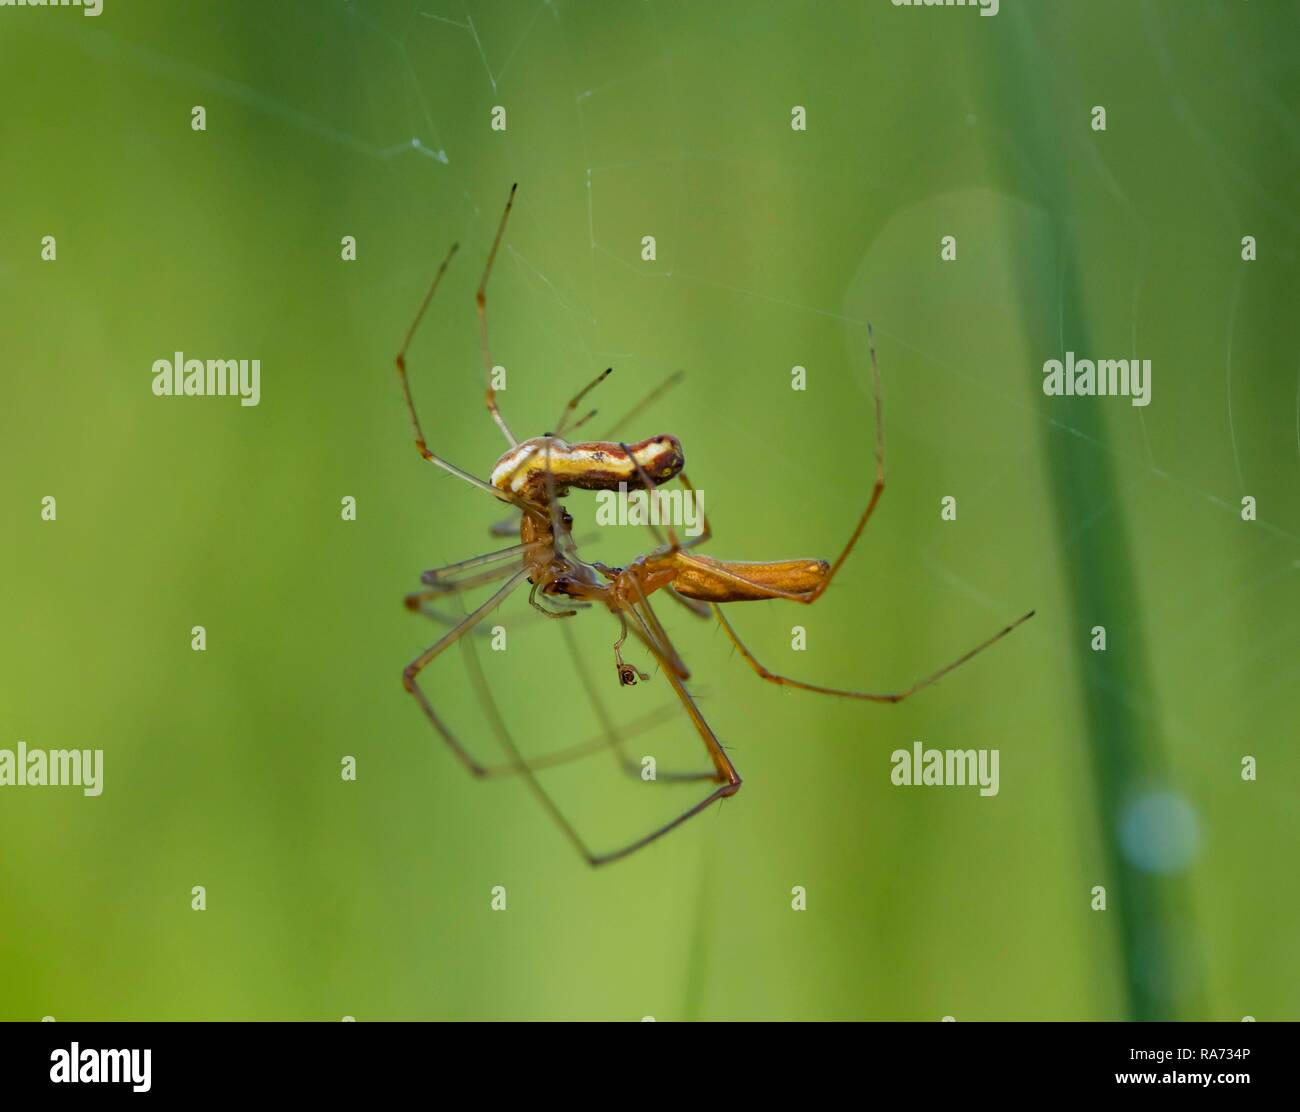 Stretcher spiders (Tetragnatha extensa) in pairing, Bavaria, Germany - Stock Image